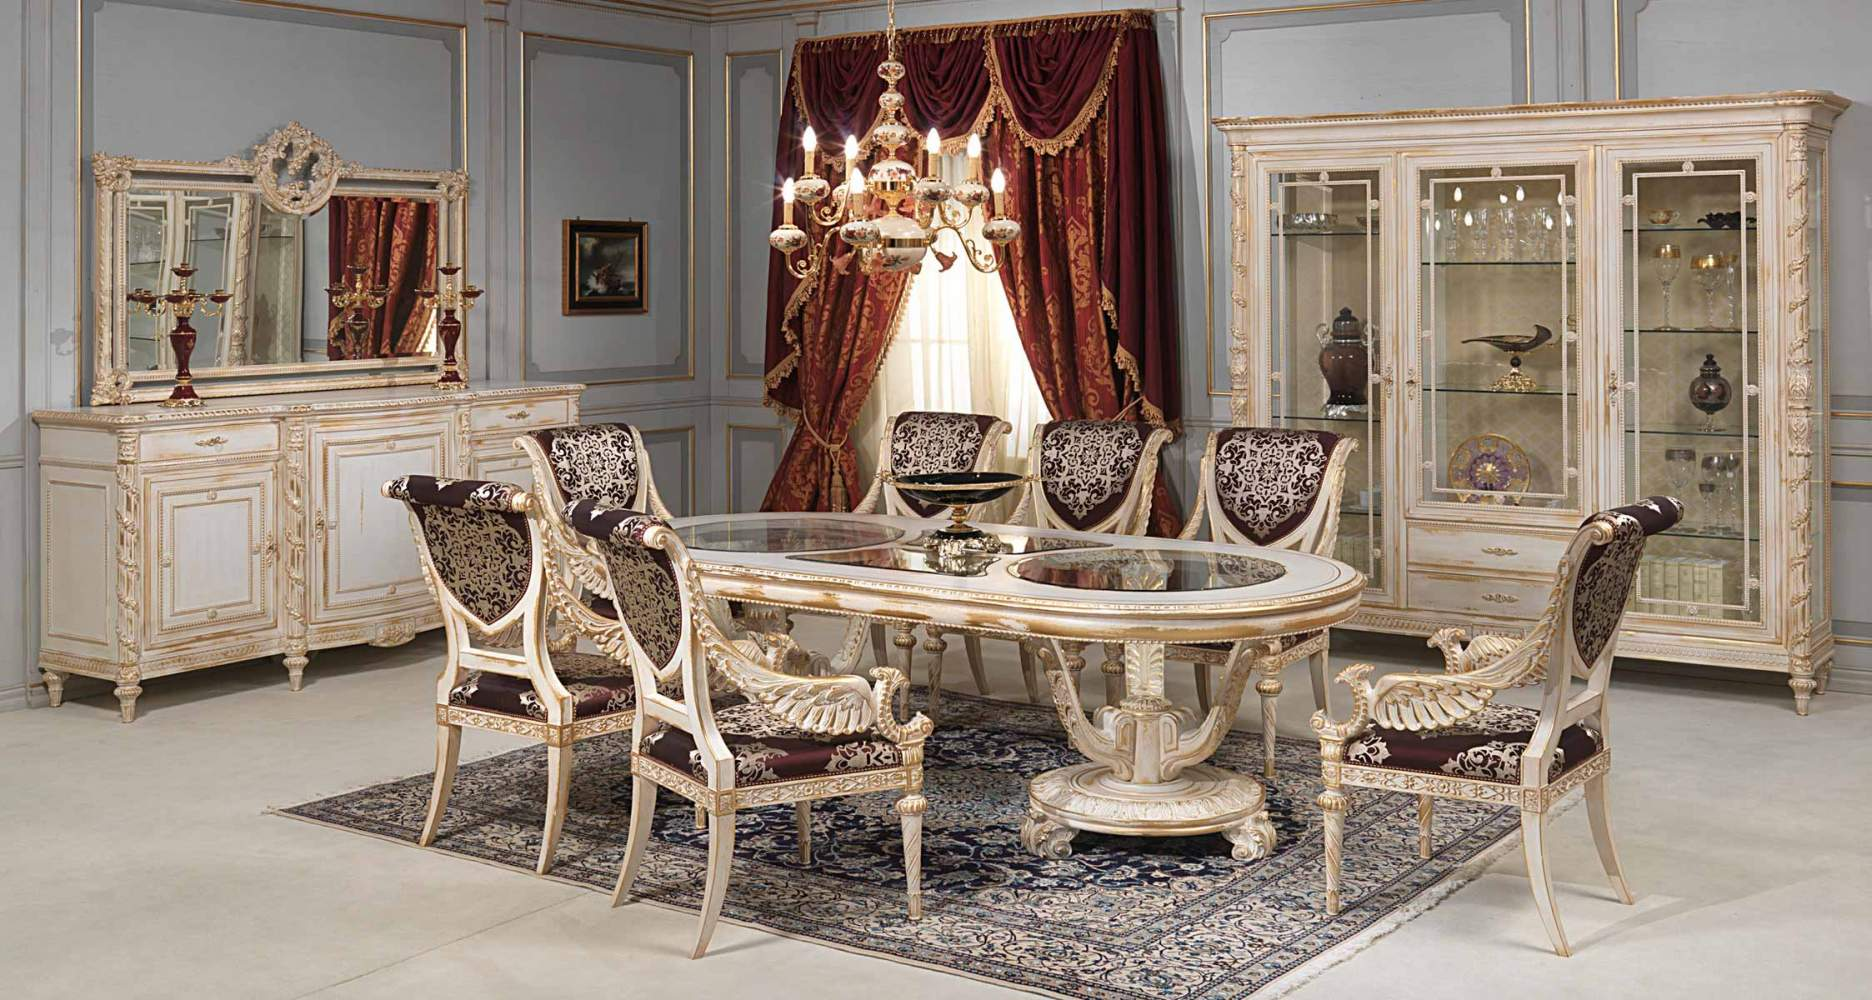 White and gold dining room in louis xvi style vimercati for Classic dining room furniture